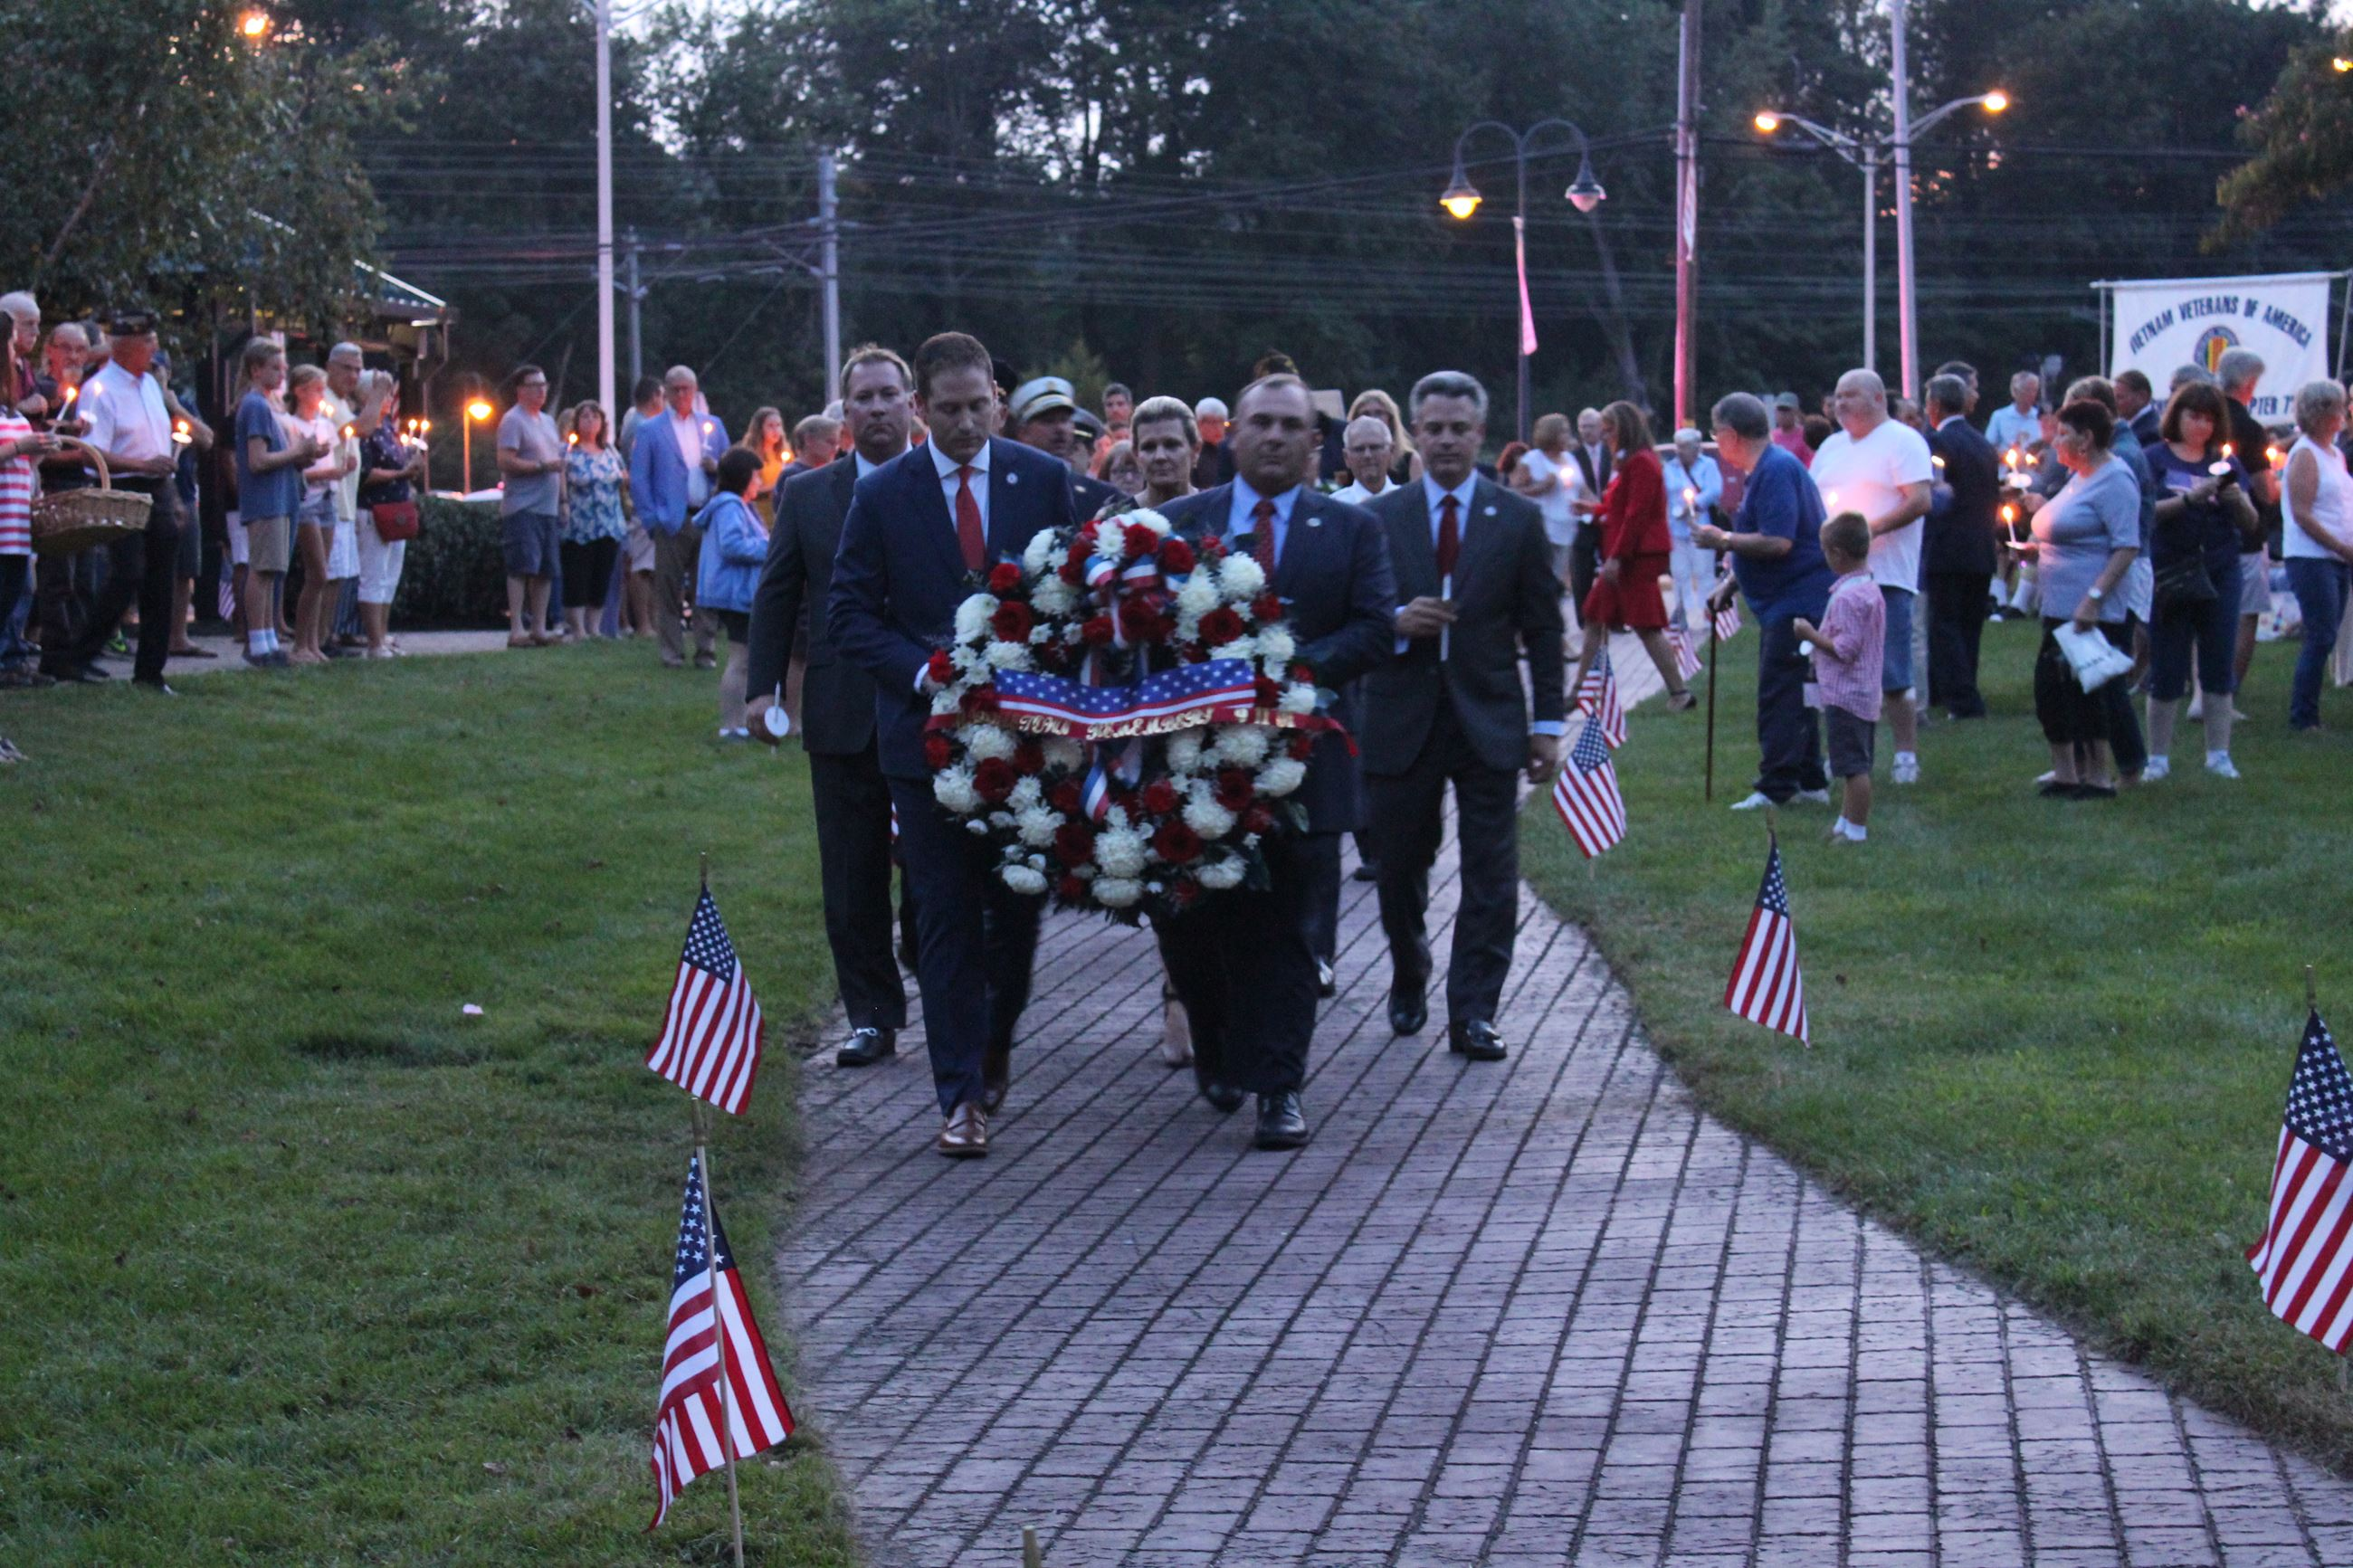 Wreath Laying at 9/11/19 Tribute